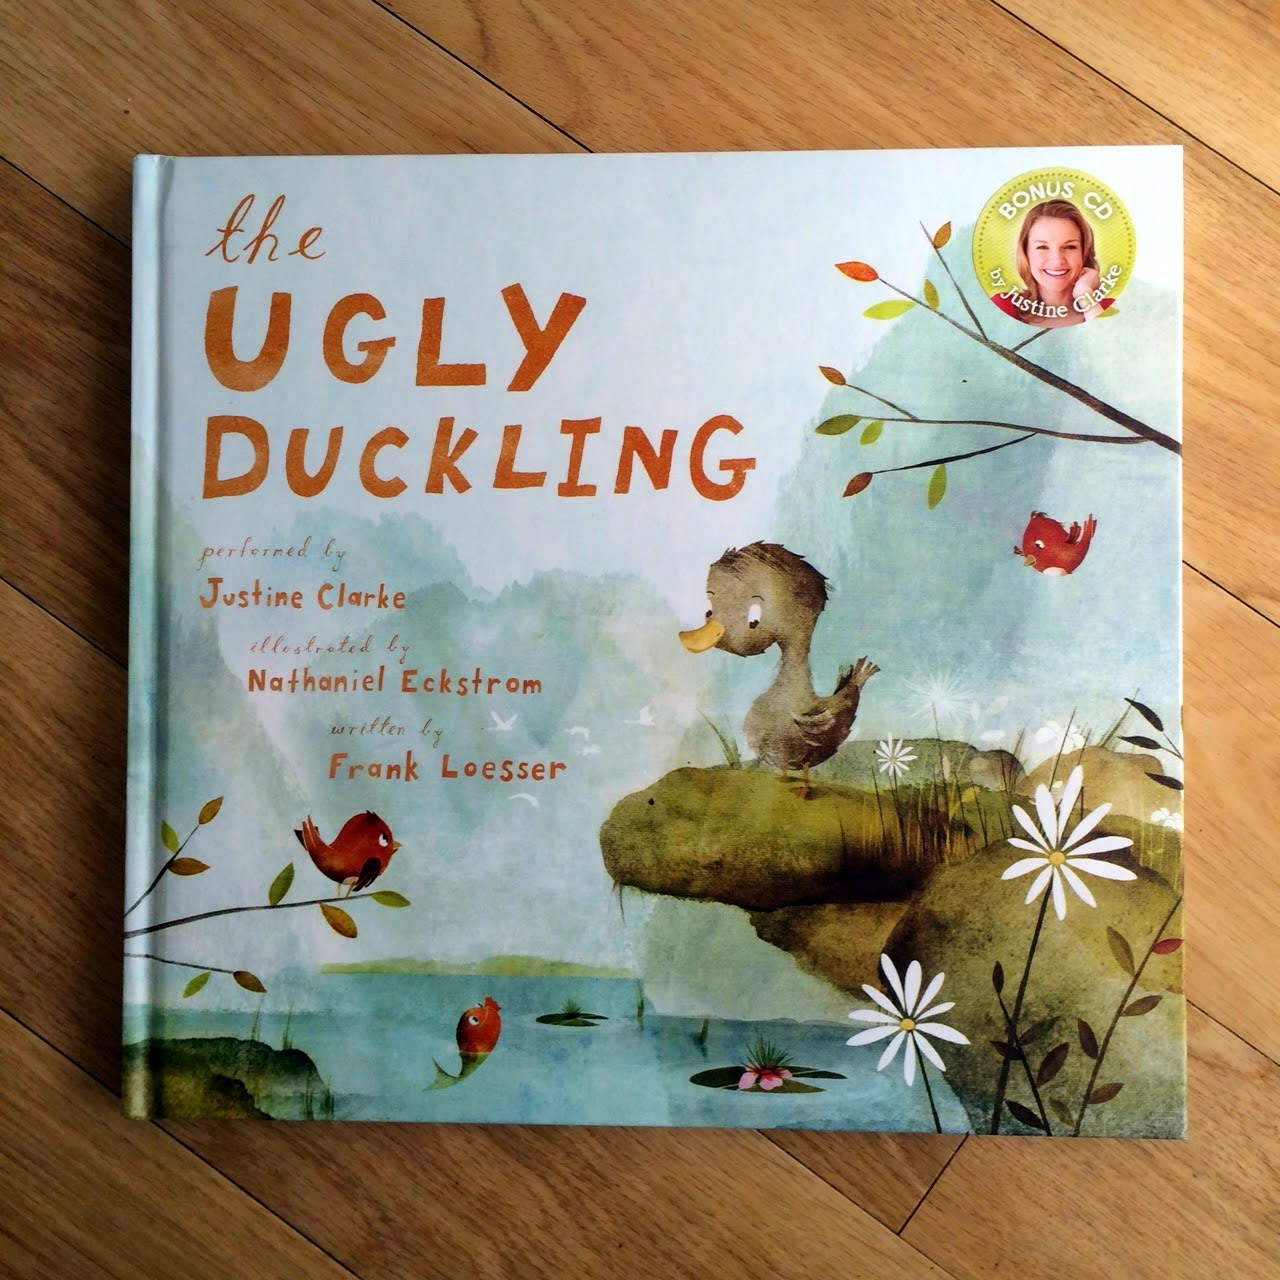 The Ugly Duckling by Frank Loesser, Justine Clarke and Nathaniel Eckstrom